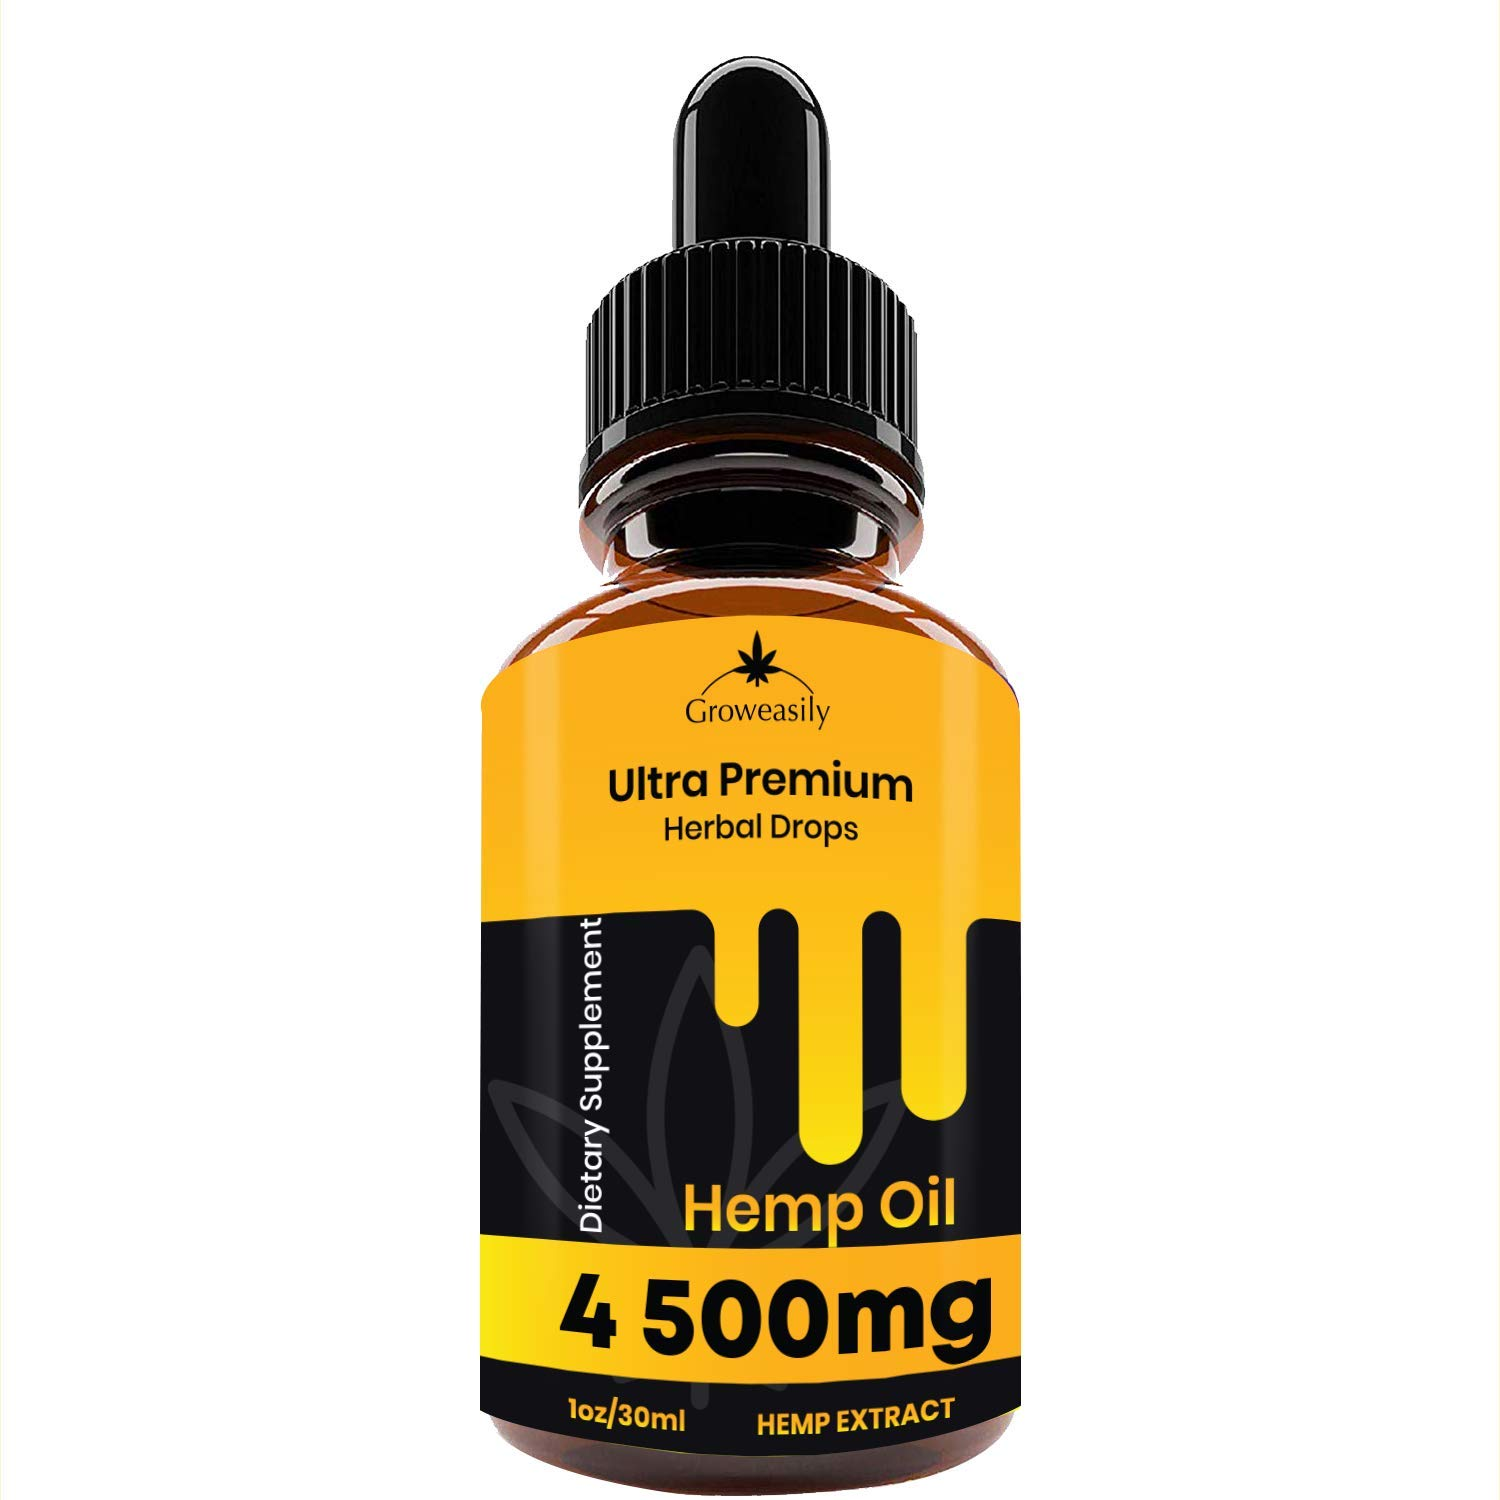 Organic Hemp Oil Drops 7500mg, Pure Full-Spectrum Support for Anxiety and Pain Relief, Natural Anti-Inflammatory, Omega Fatty Acids, Cold-Pressed Extract